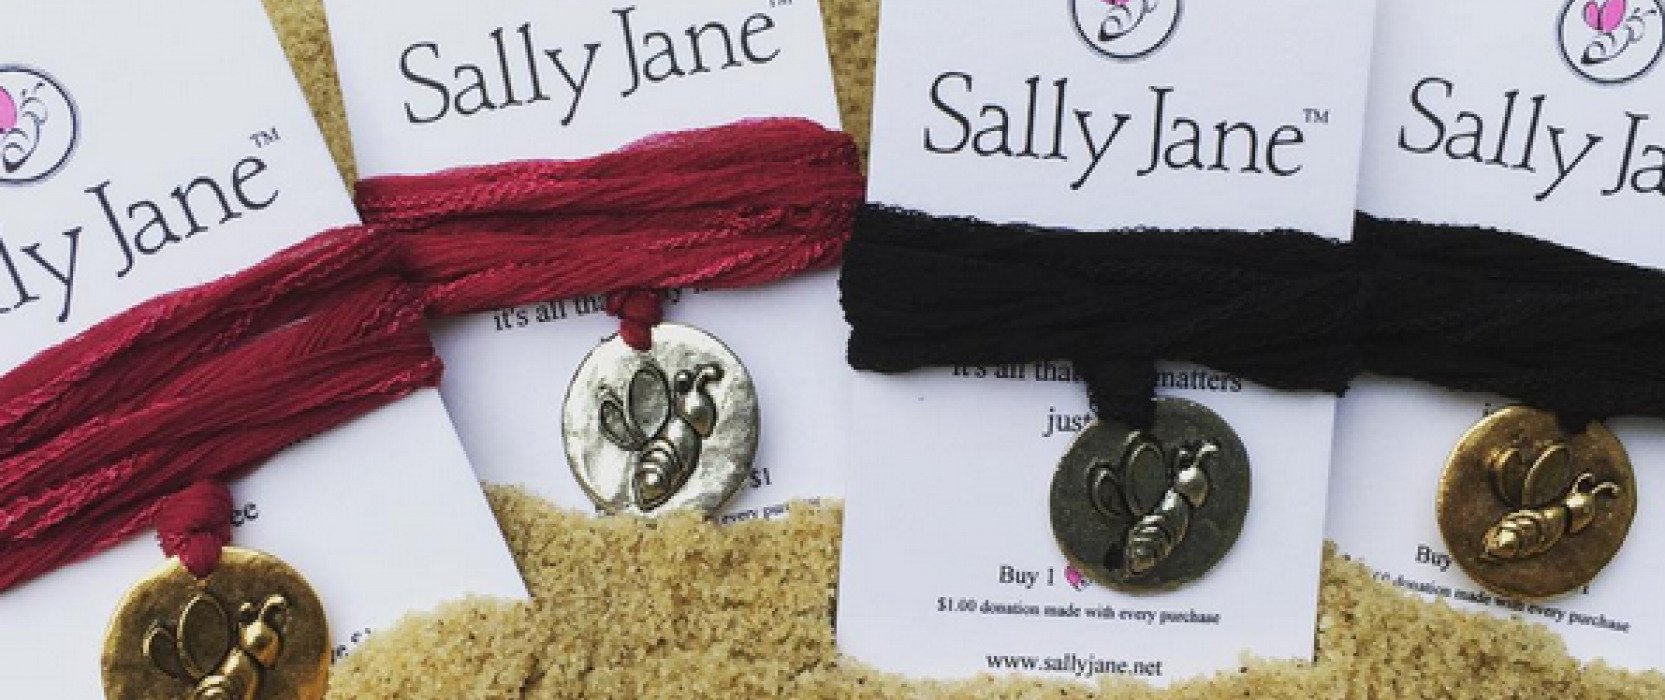 Sally Jane Jewelry